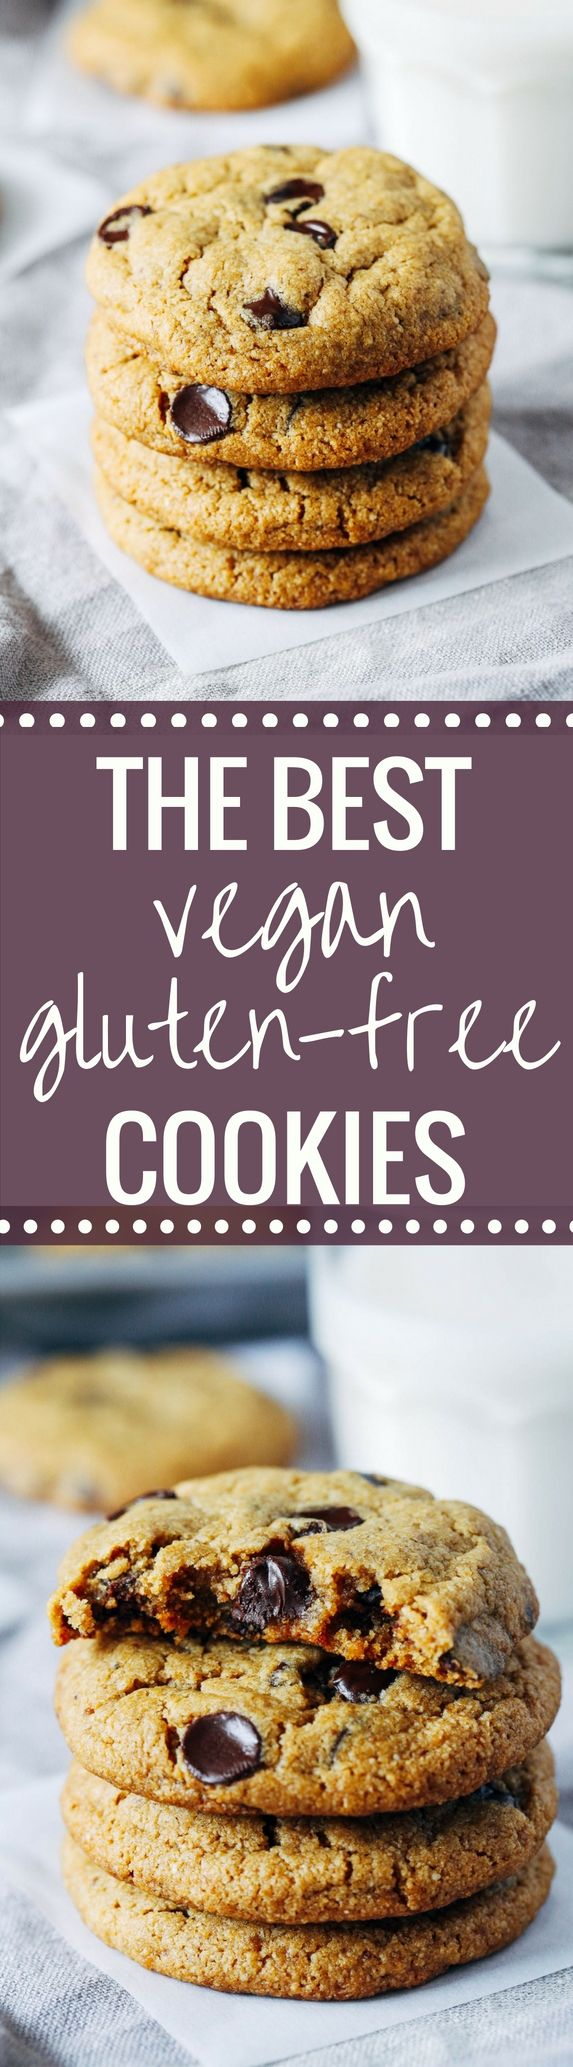 The Best Vegan and Gluten-free Chocolate Chip Cookies- made with a combo of oat flour and almond flour, these cookies have a delightful chewy texture. You would never guess they're made without refined sugar, starches or gums!